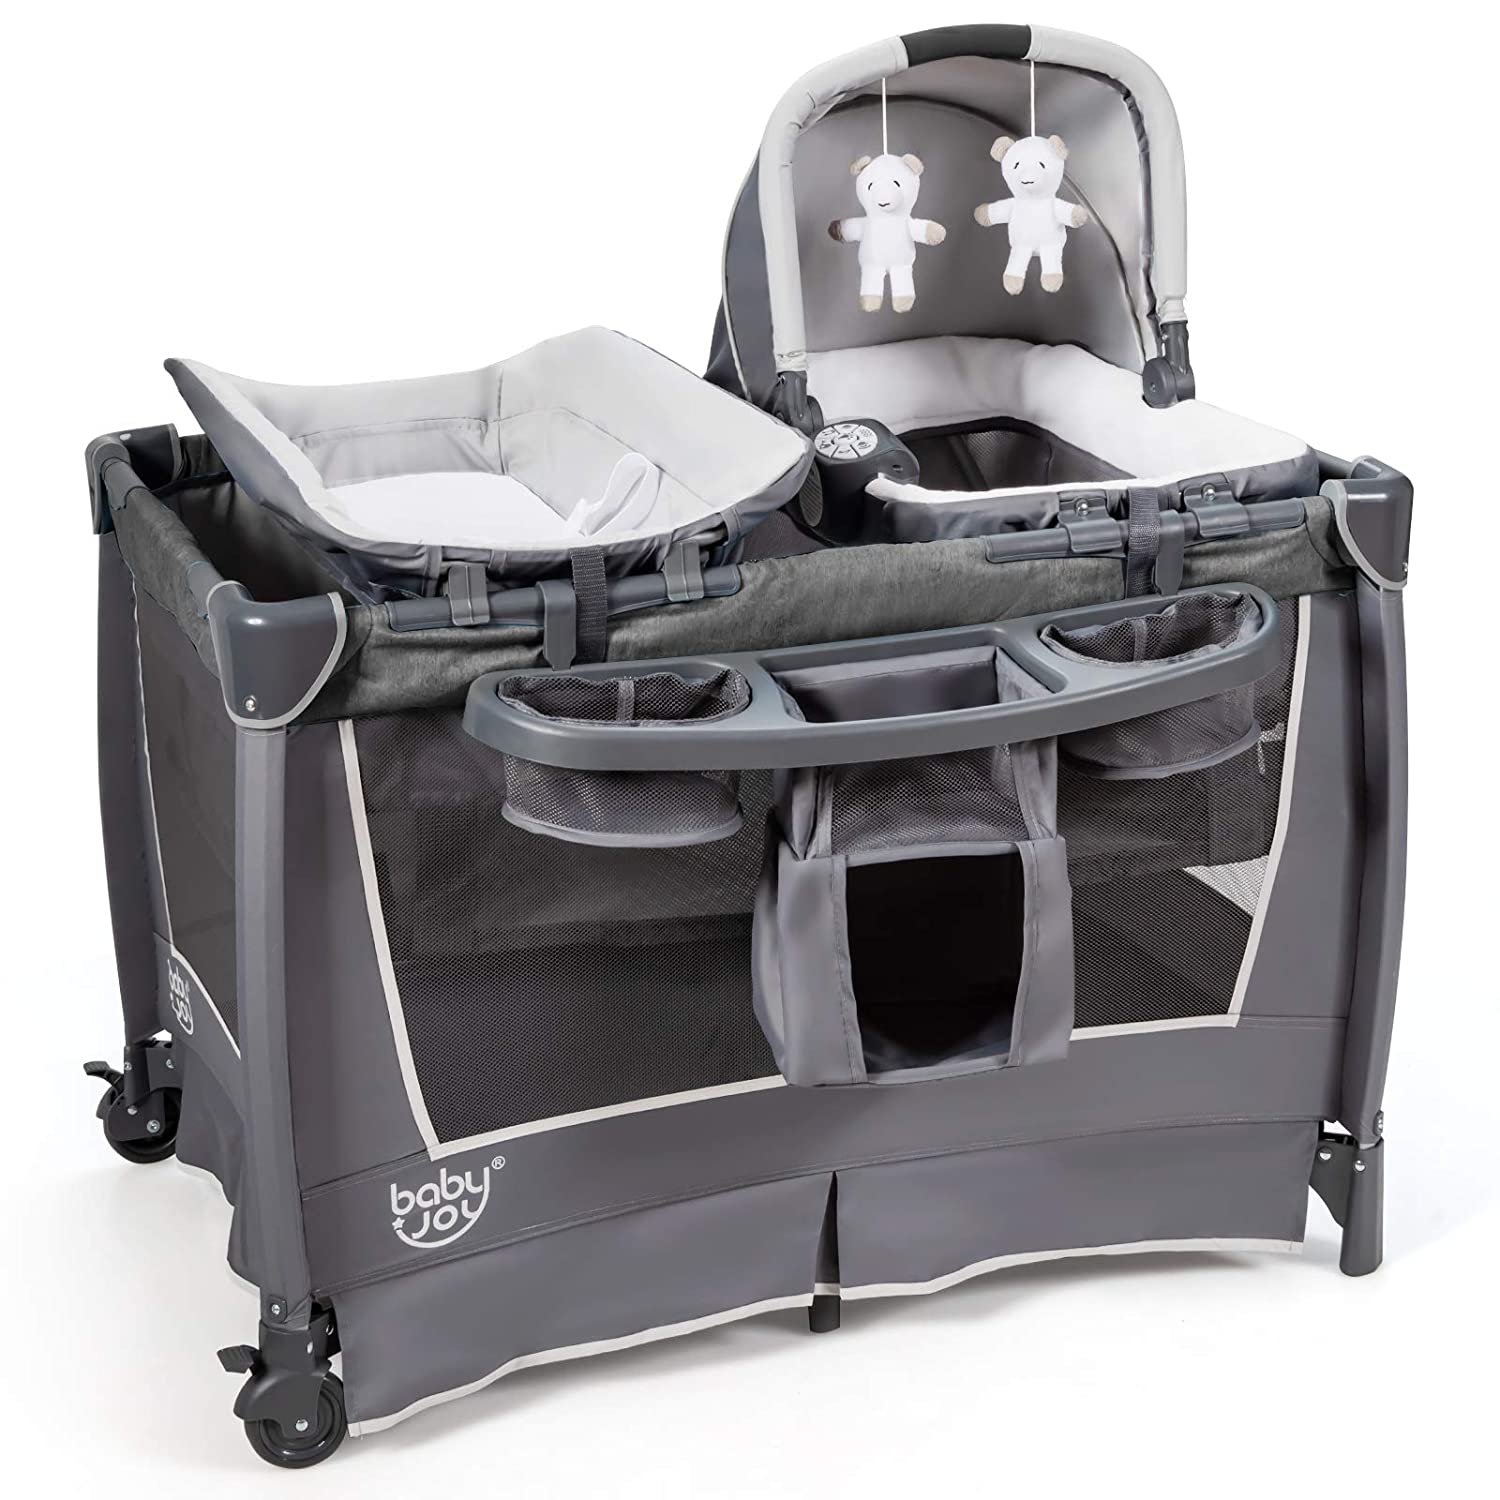 BABY JOY 4 in 1 Portable Baby Playard with Bassinet